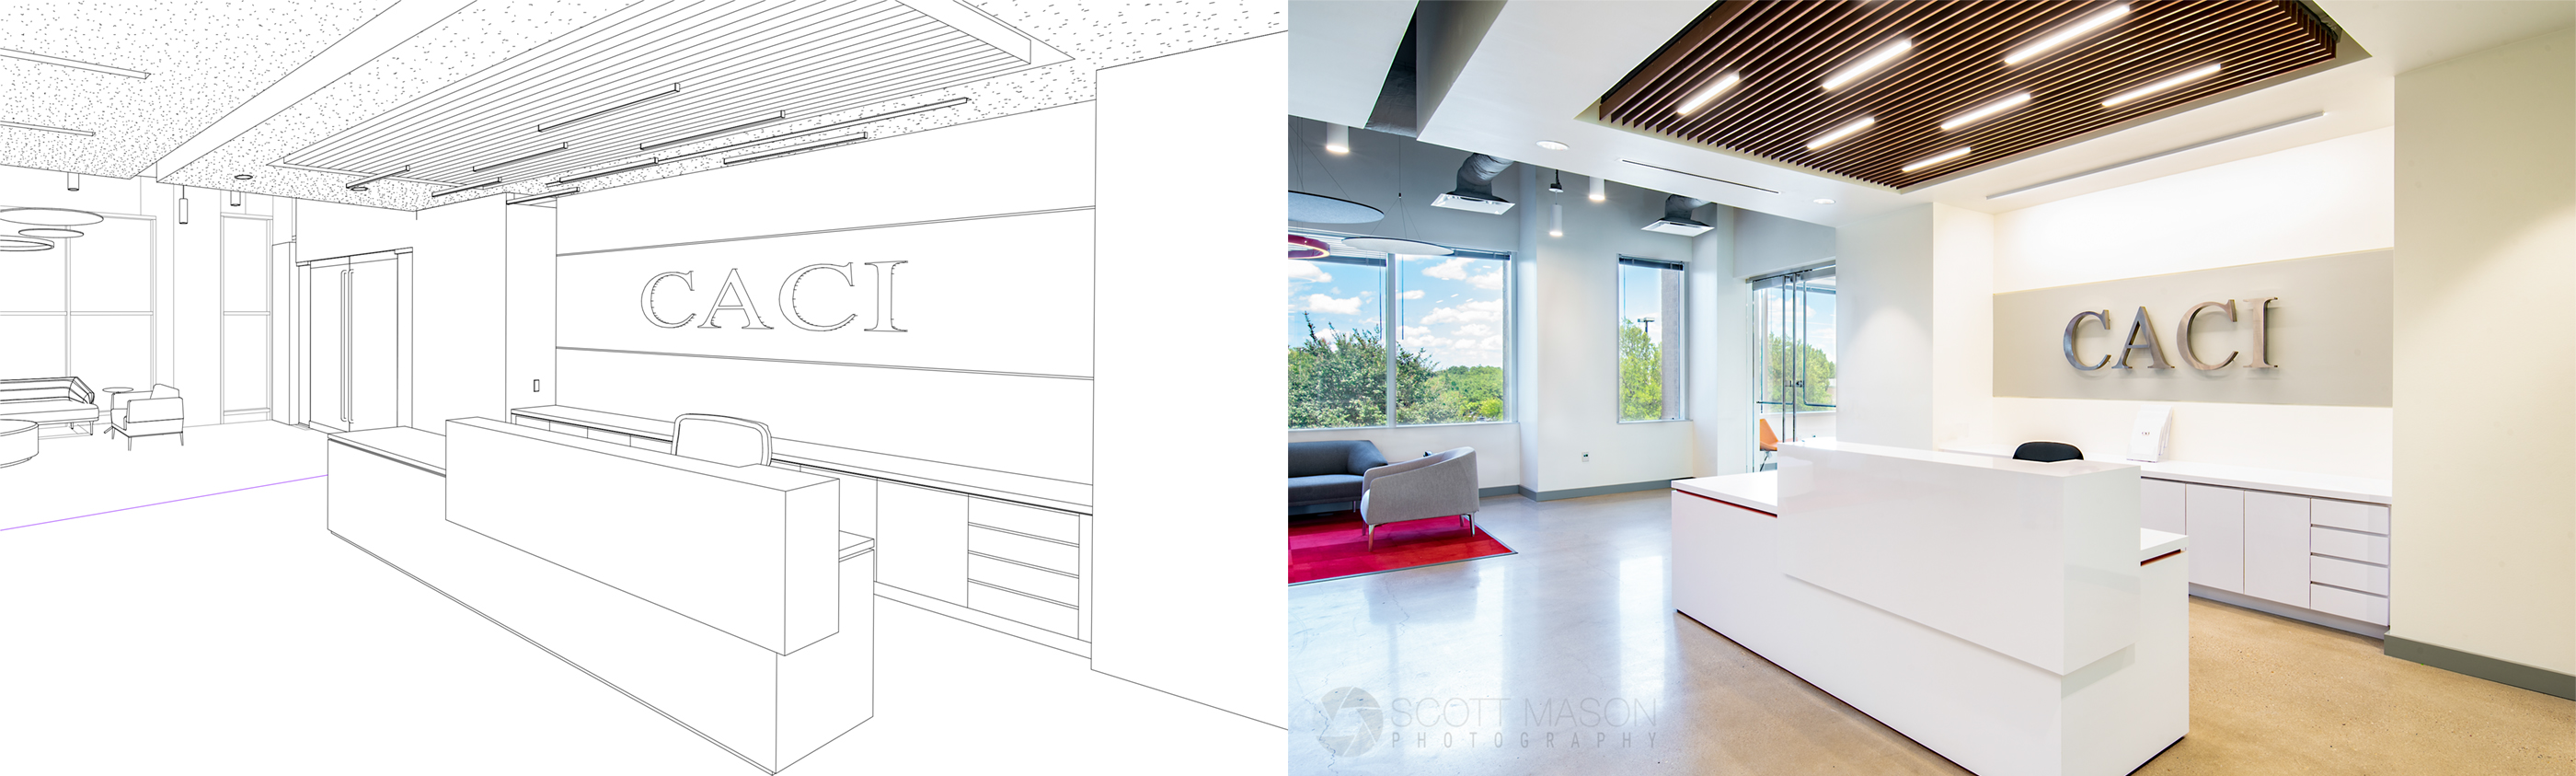 side-by-side of an architectural rendering and interior photo of an office lobby with signage